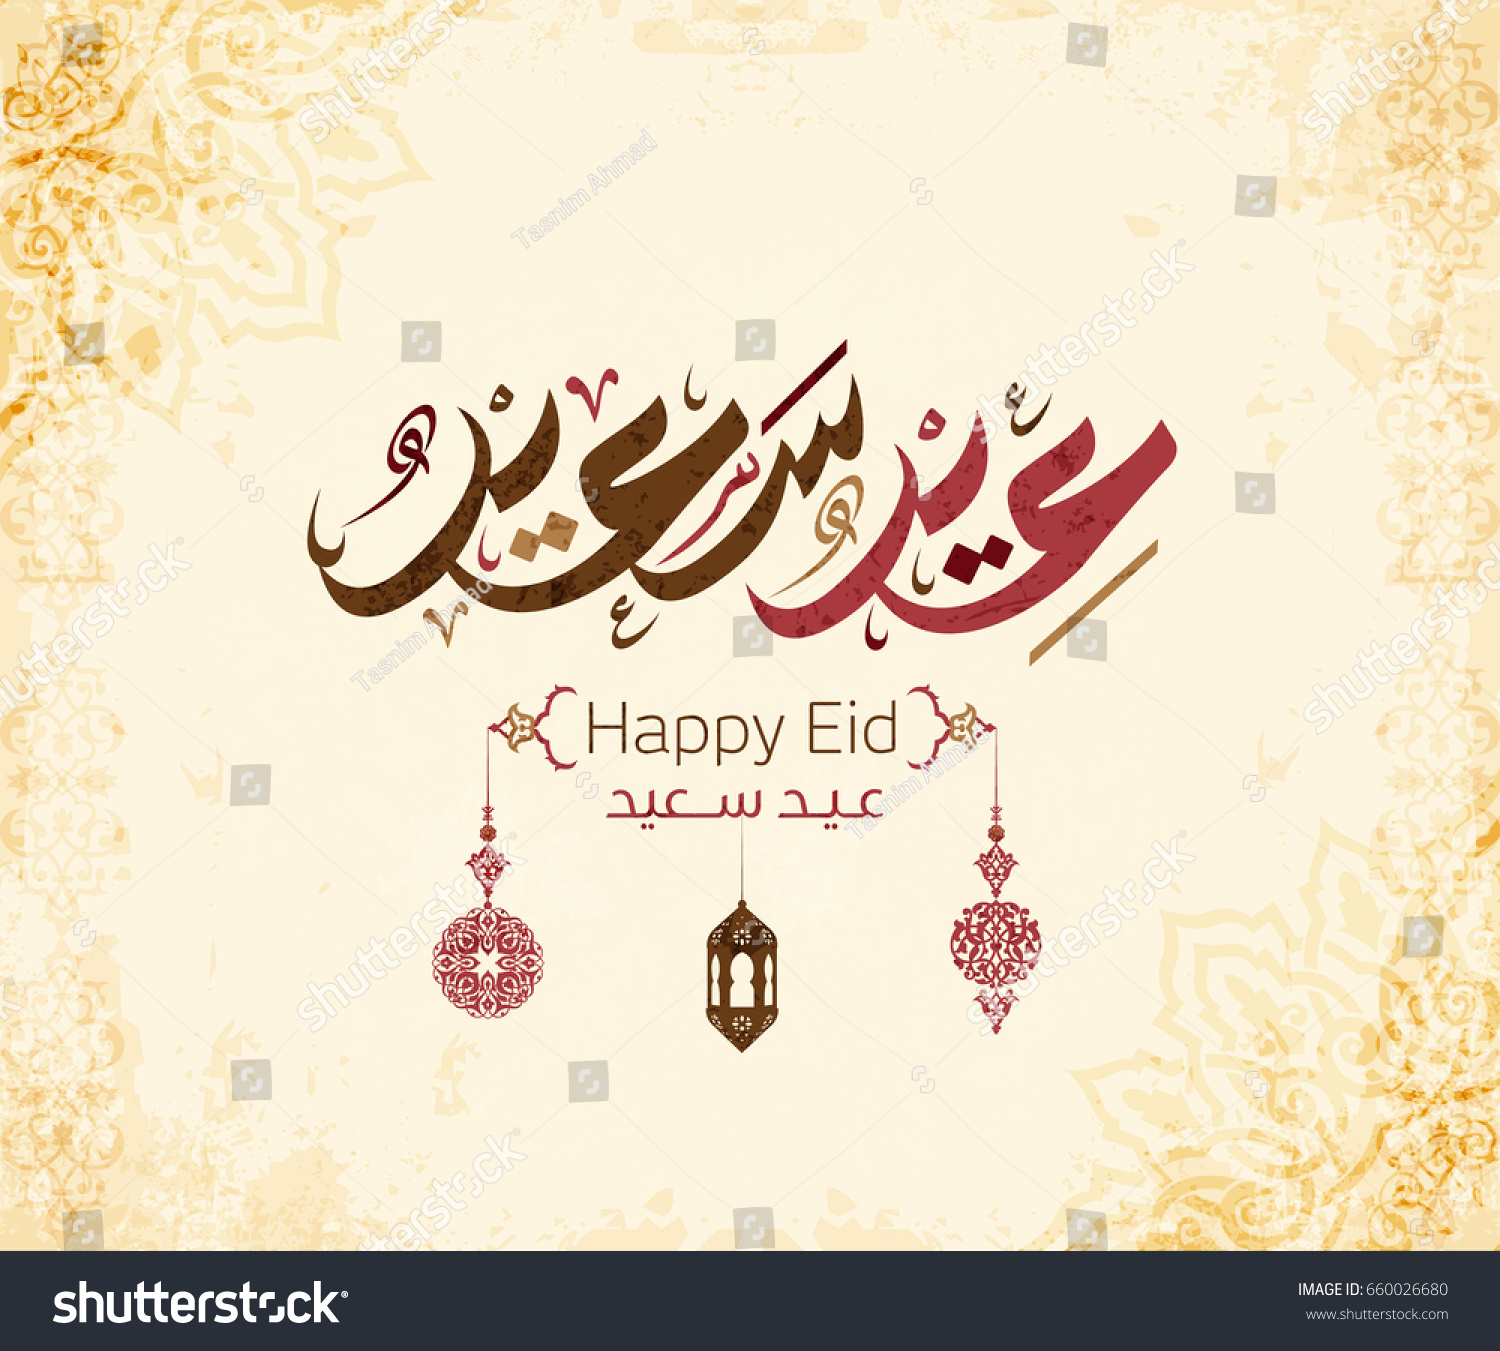 Happy eid greeting card arabic calligraphy stock vector 660026680 happy eid greeting card in arabic calligraphy style 2 kristyandbryce Choice Image